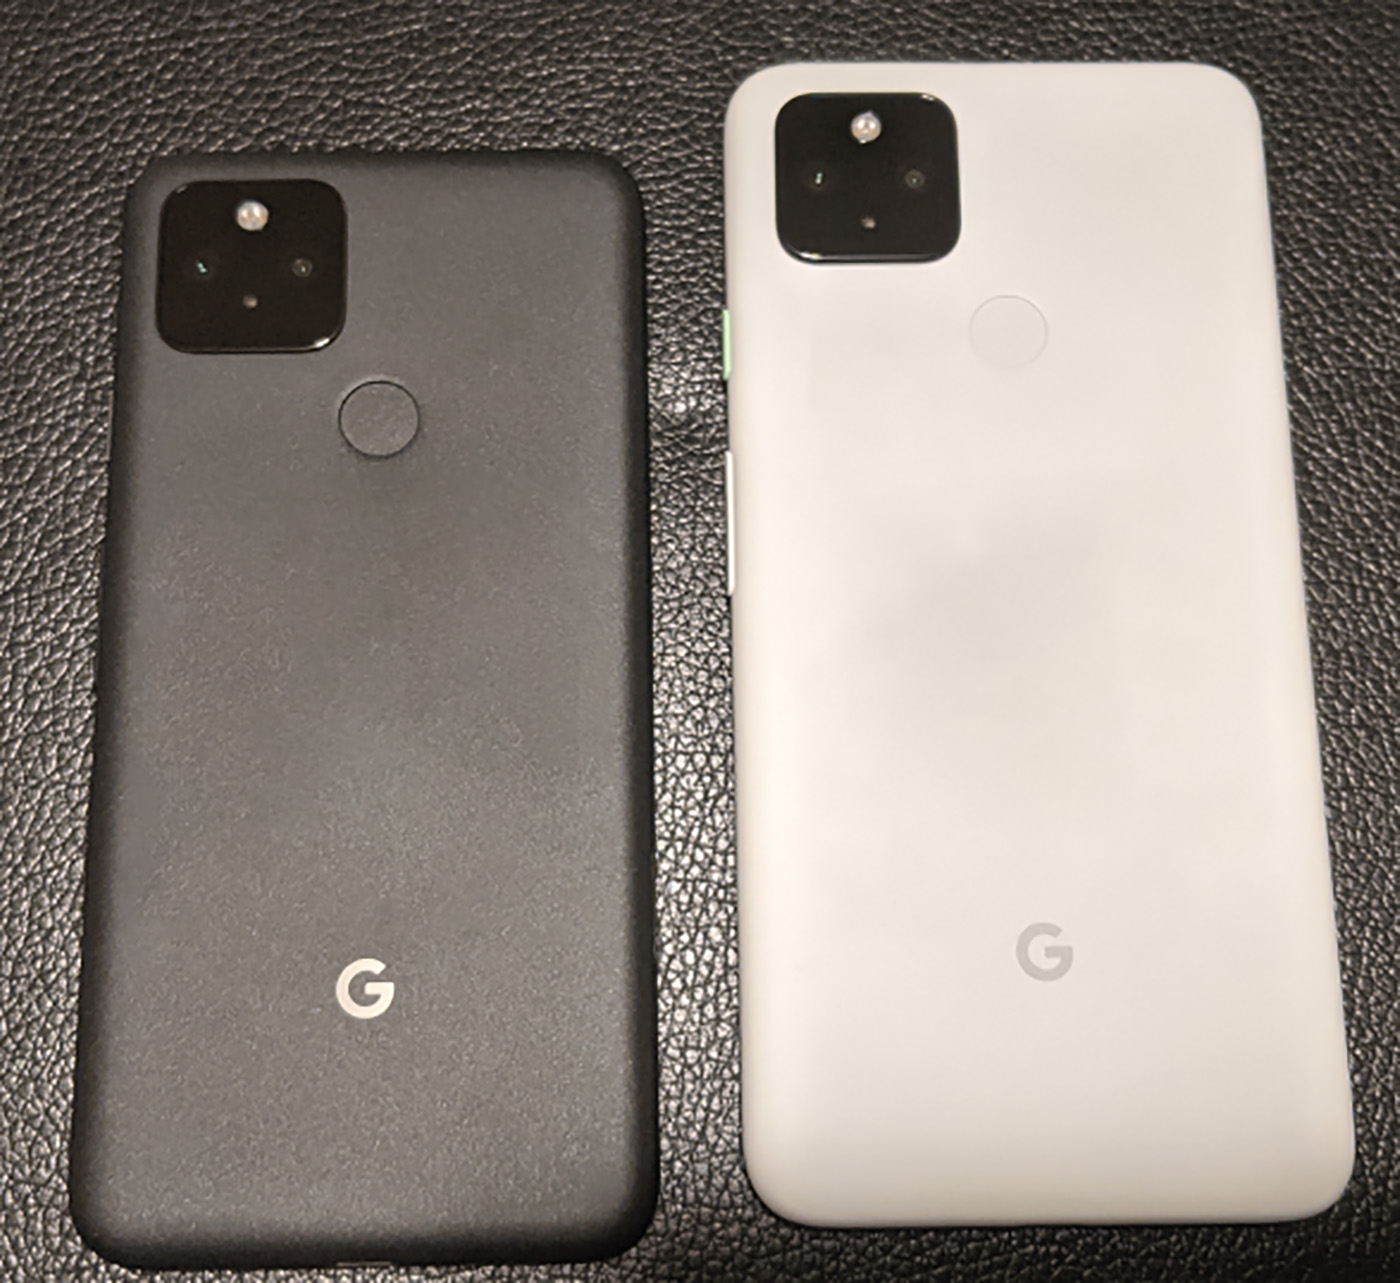 Google To Improve Batteries On New Pixels: Leak